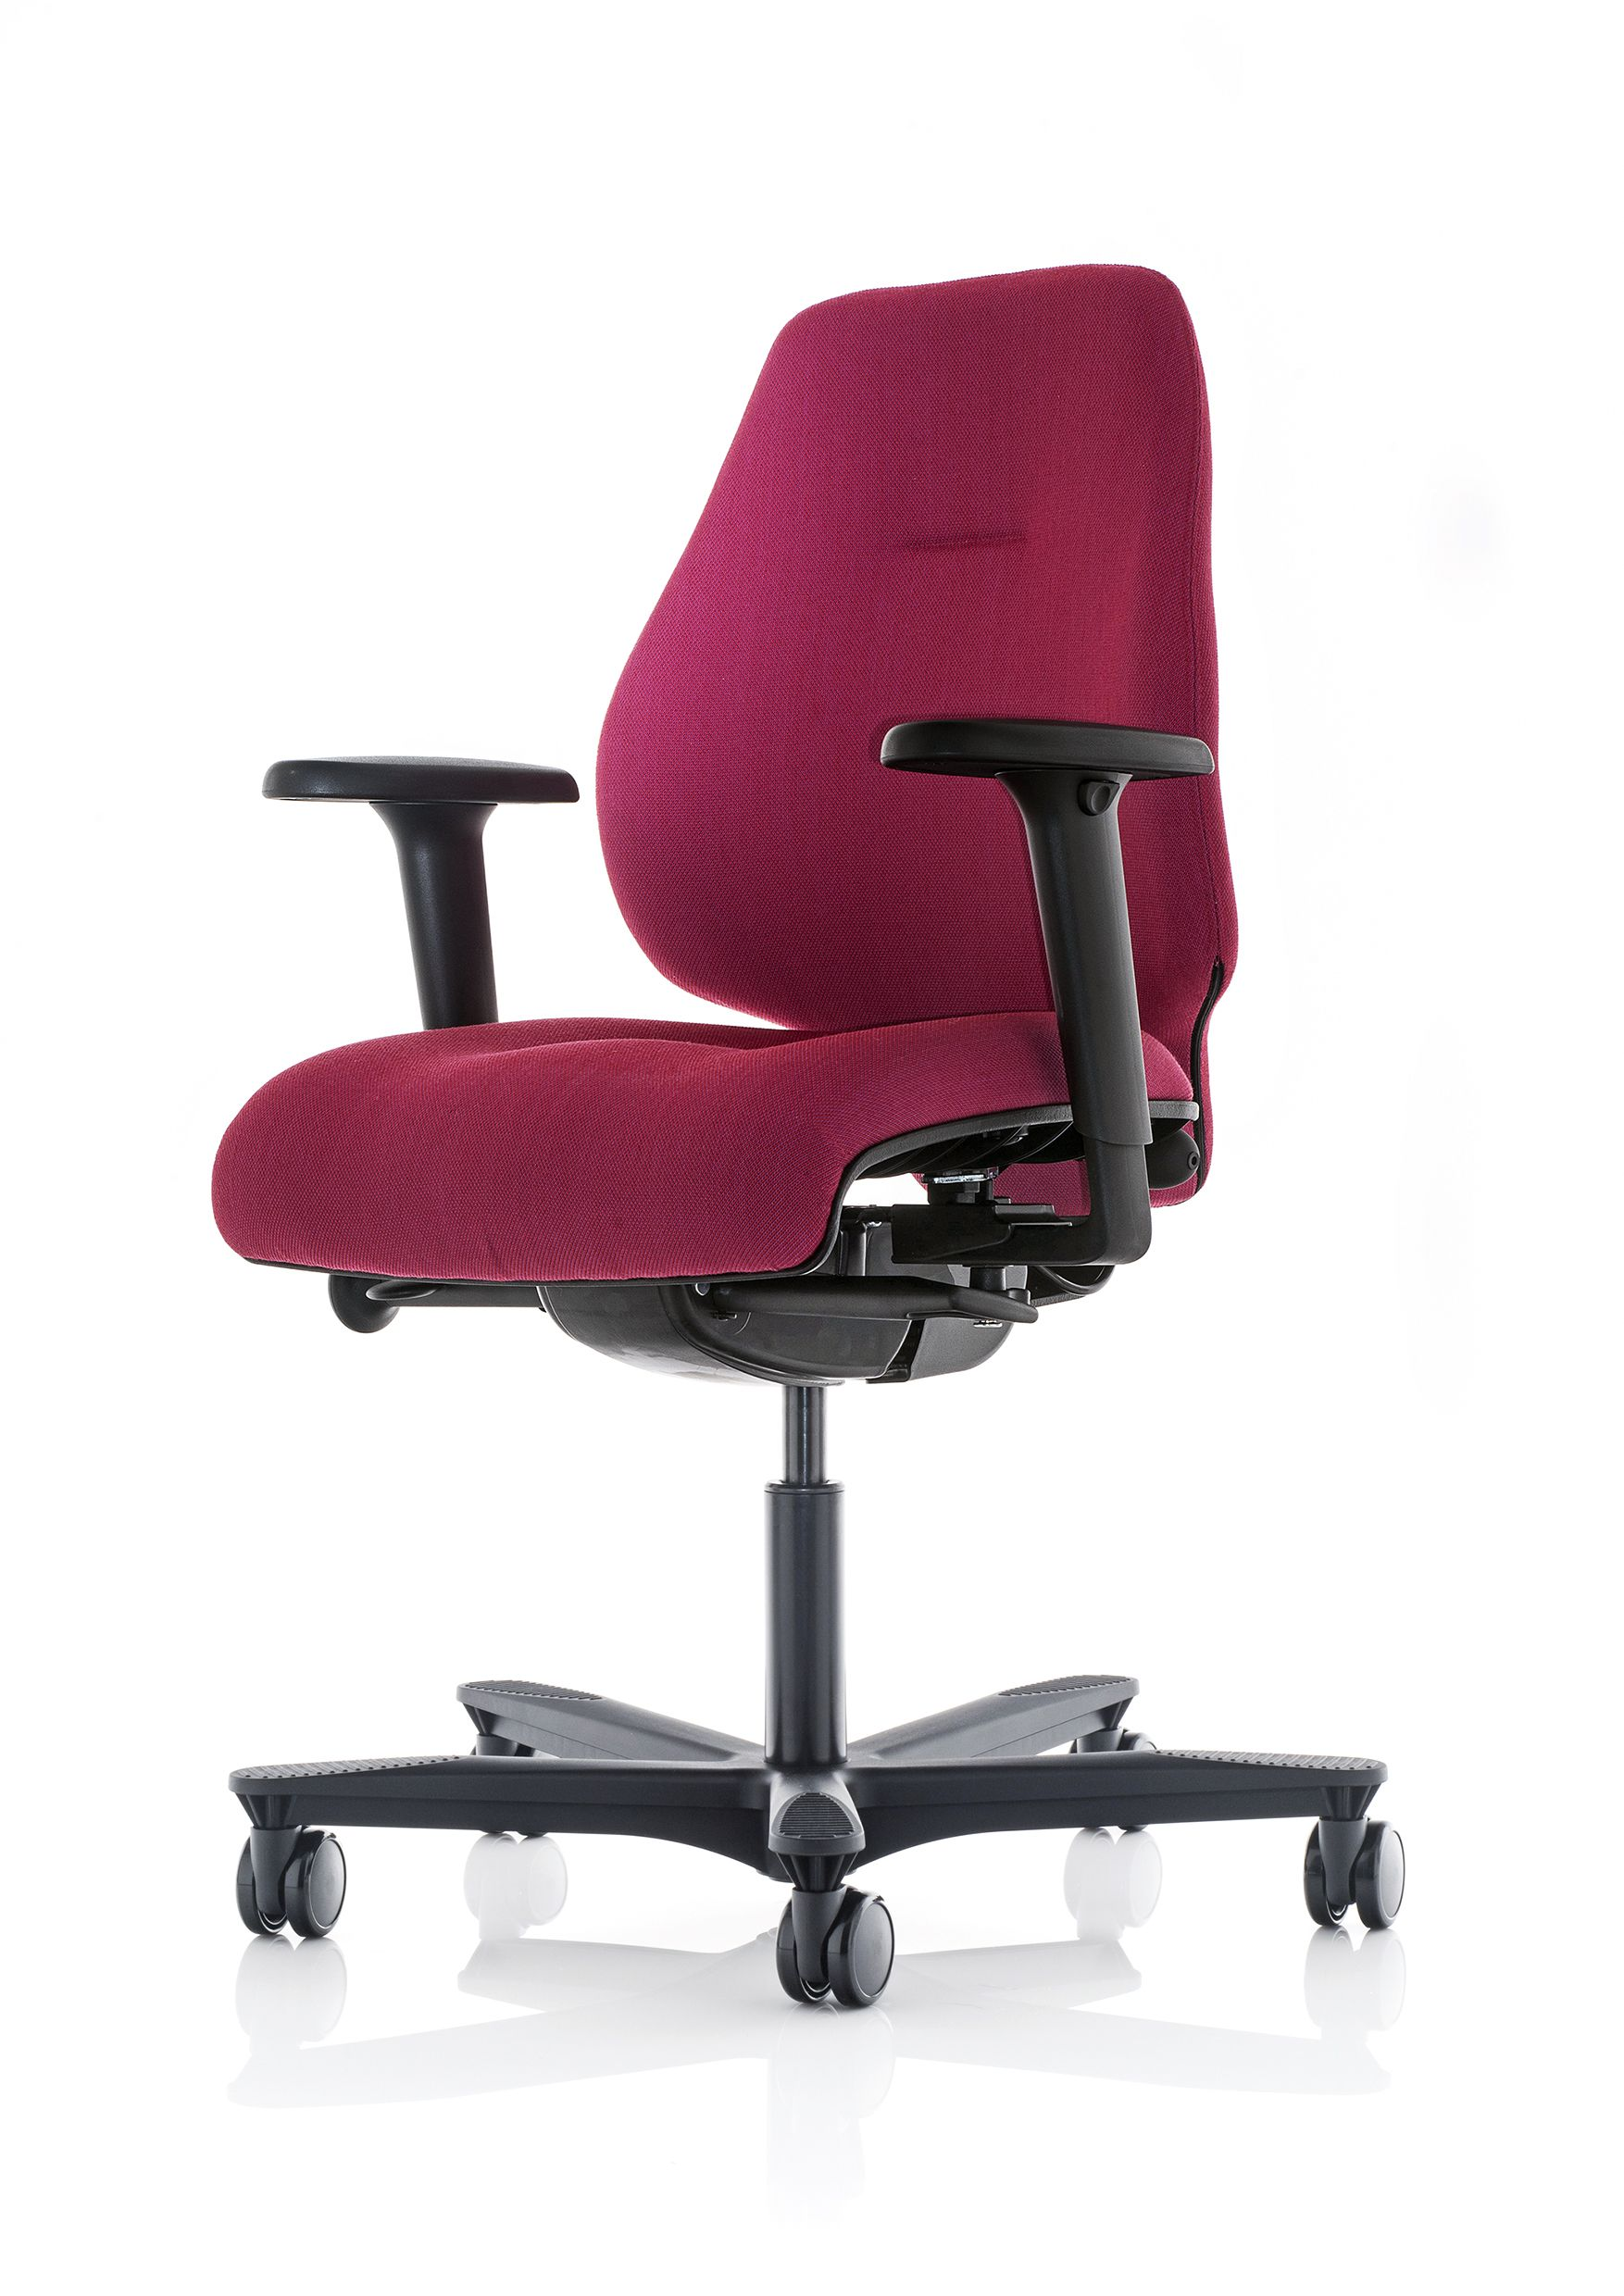 The Spira Plus By Orangebox Is A Task Chair With More Adjustment